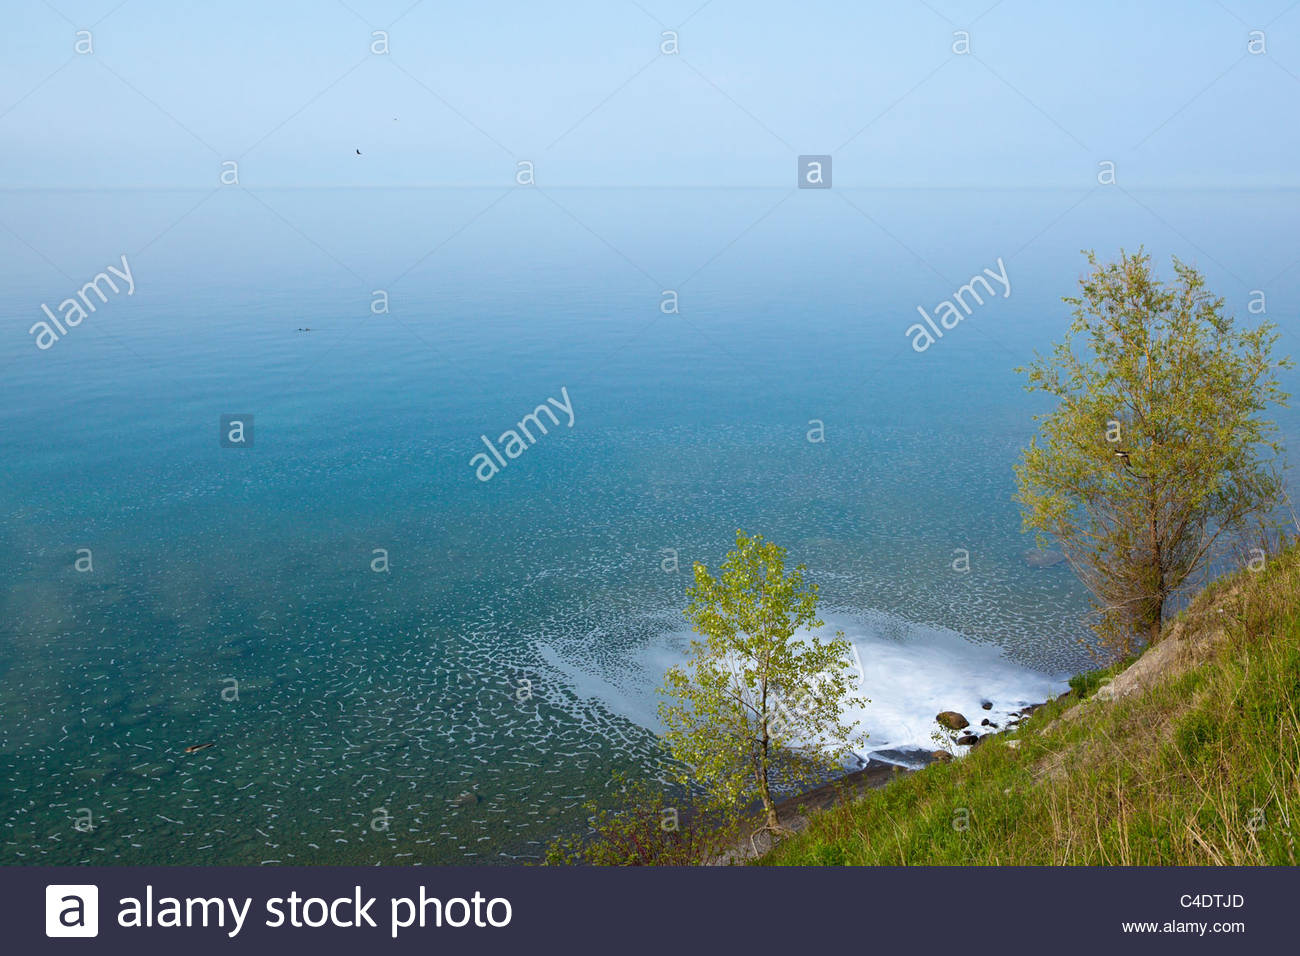 Urban runoff water from a storm sewer entering Lake Ontario in Ontario Canada - Stock Image